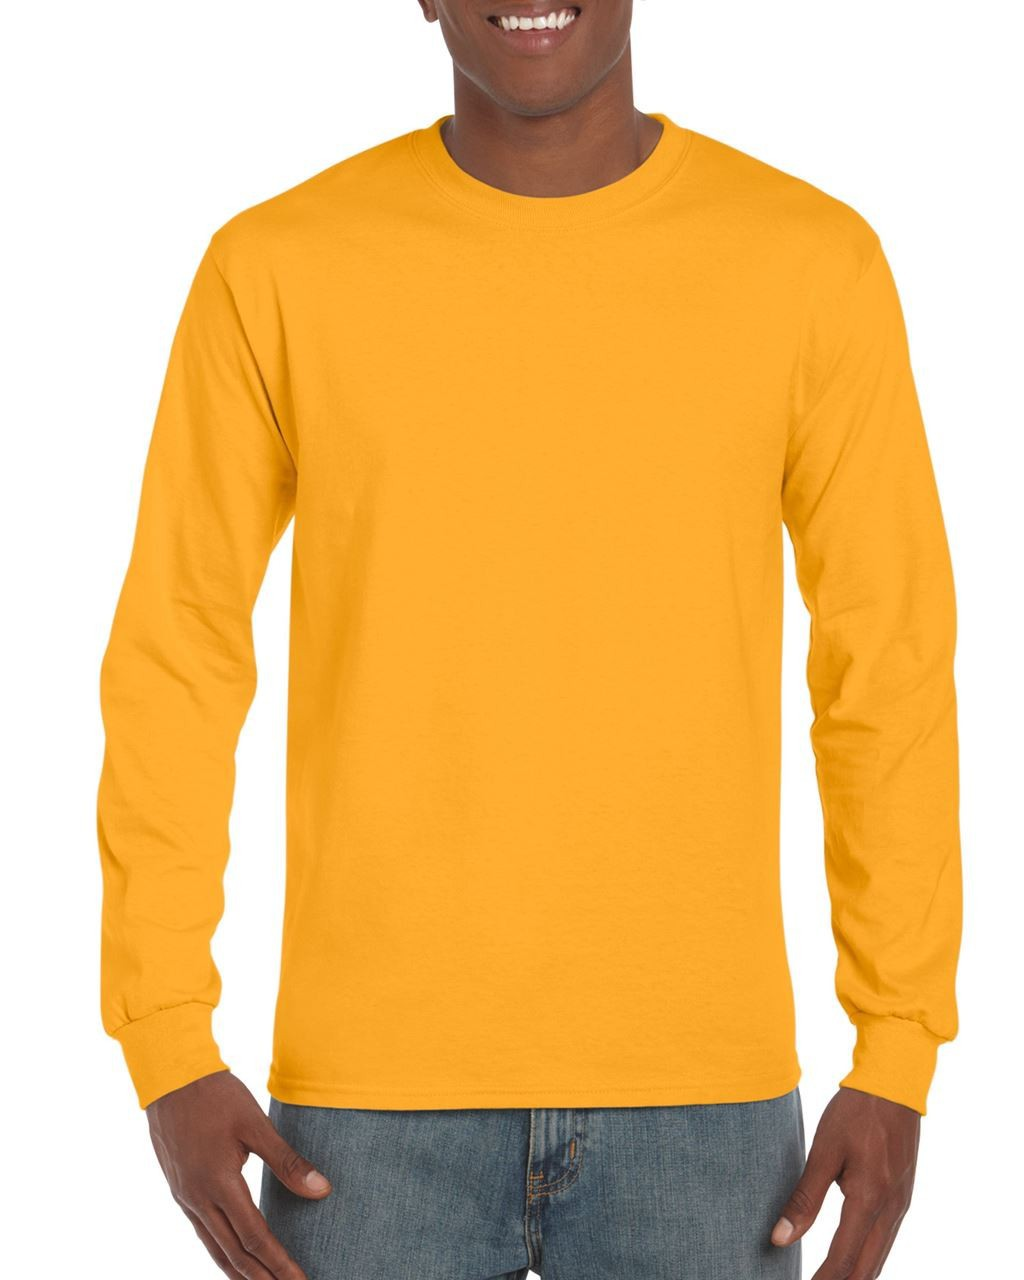 509c0390 Gildan Ultra Cotton Adult Long Sleeve T-shirt, Gold, XL (long.sleeve ...